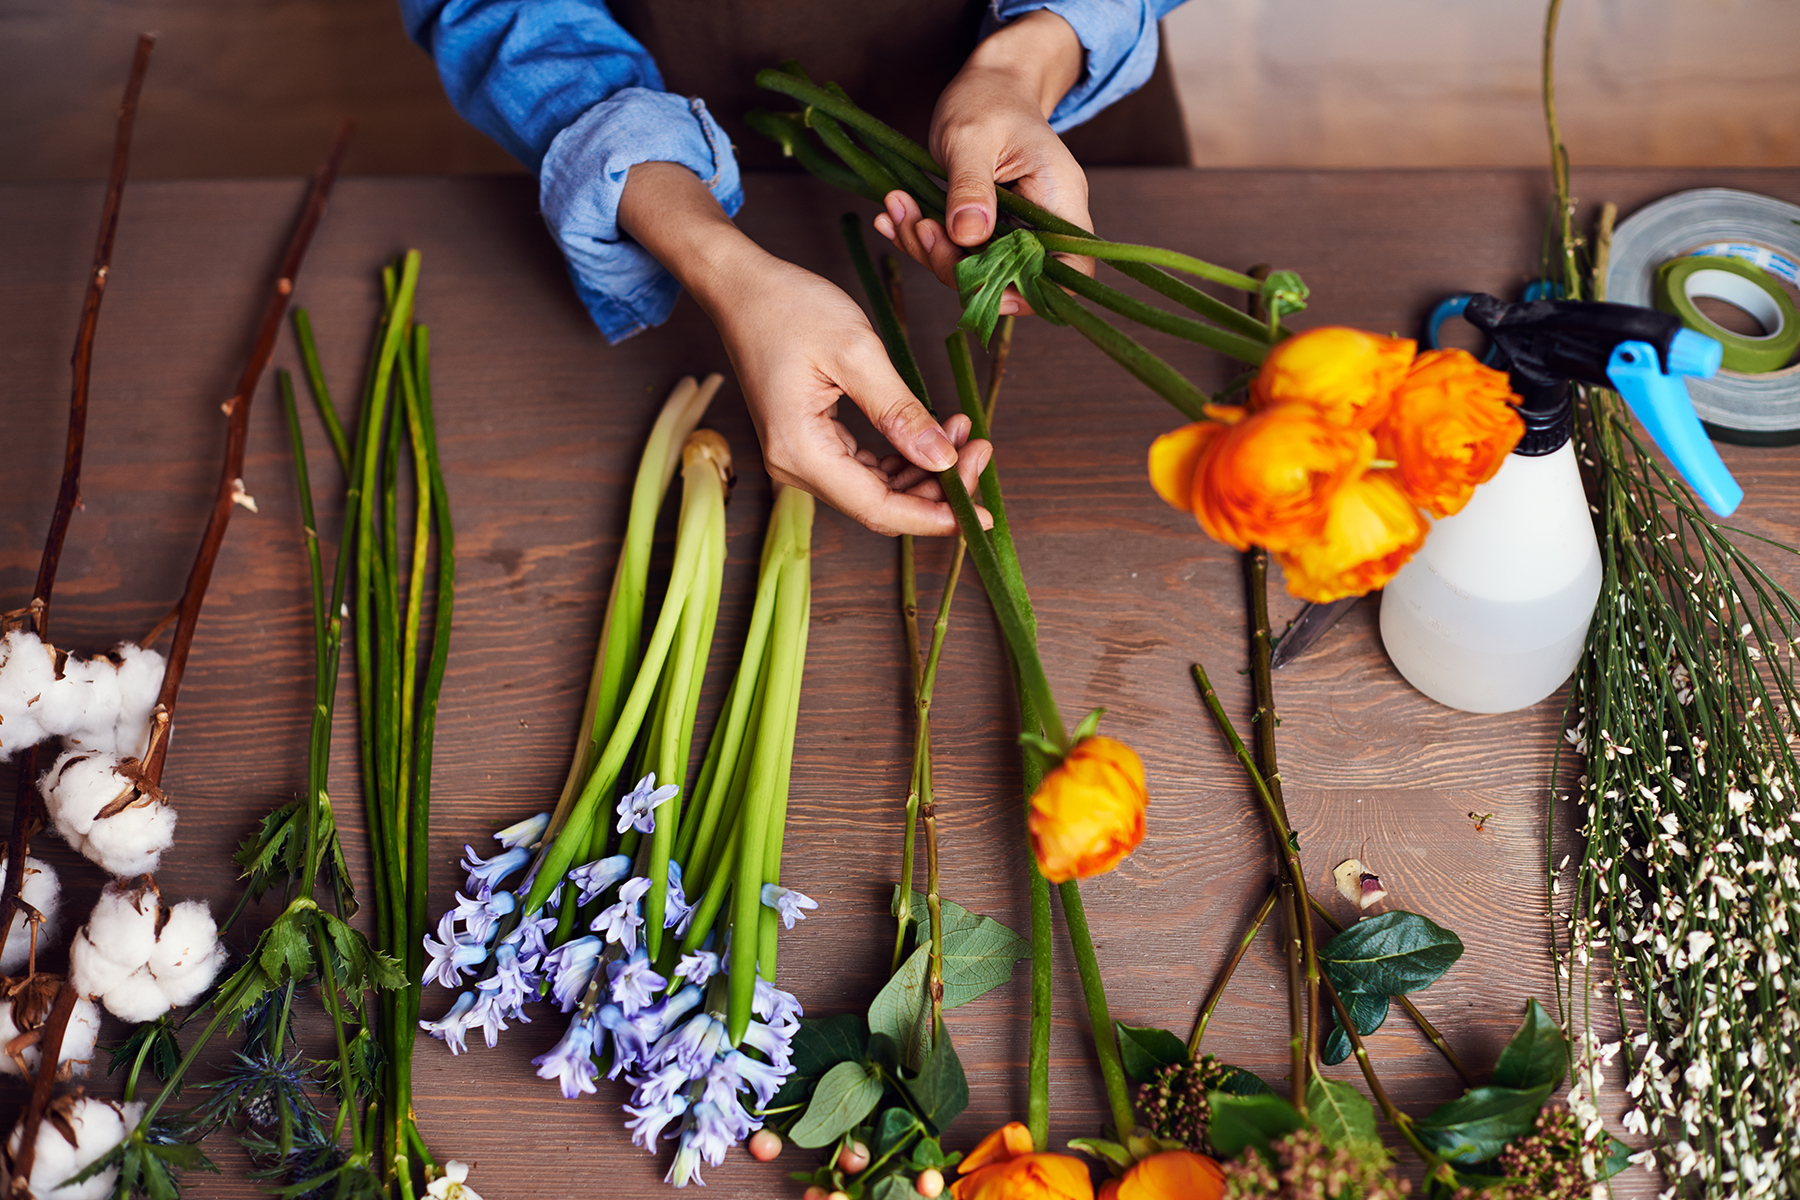 Preparing Your Yard & Garden for Fall: 5 Things to Do Now